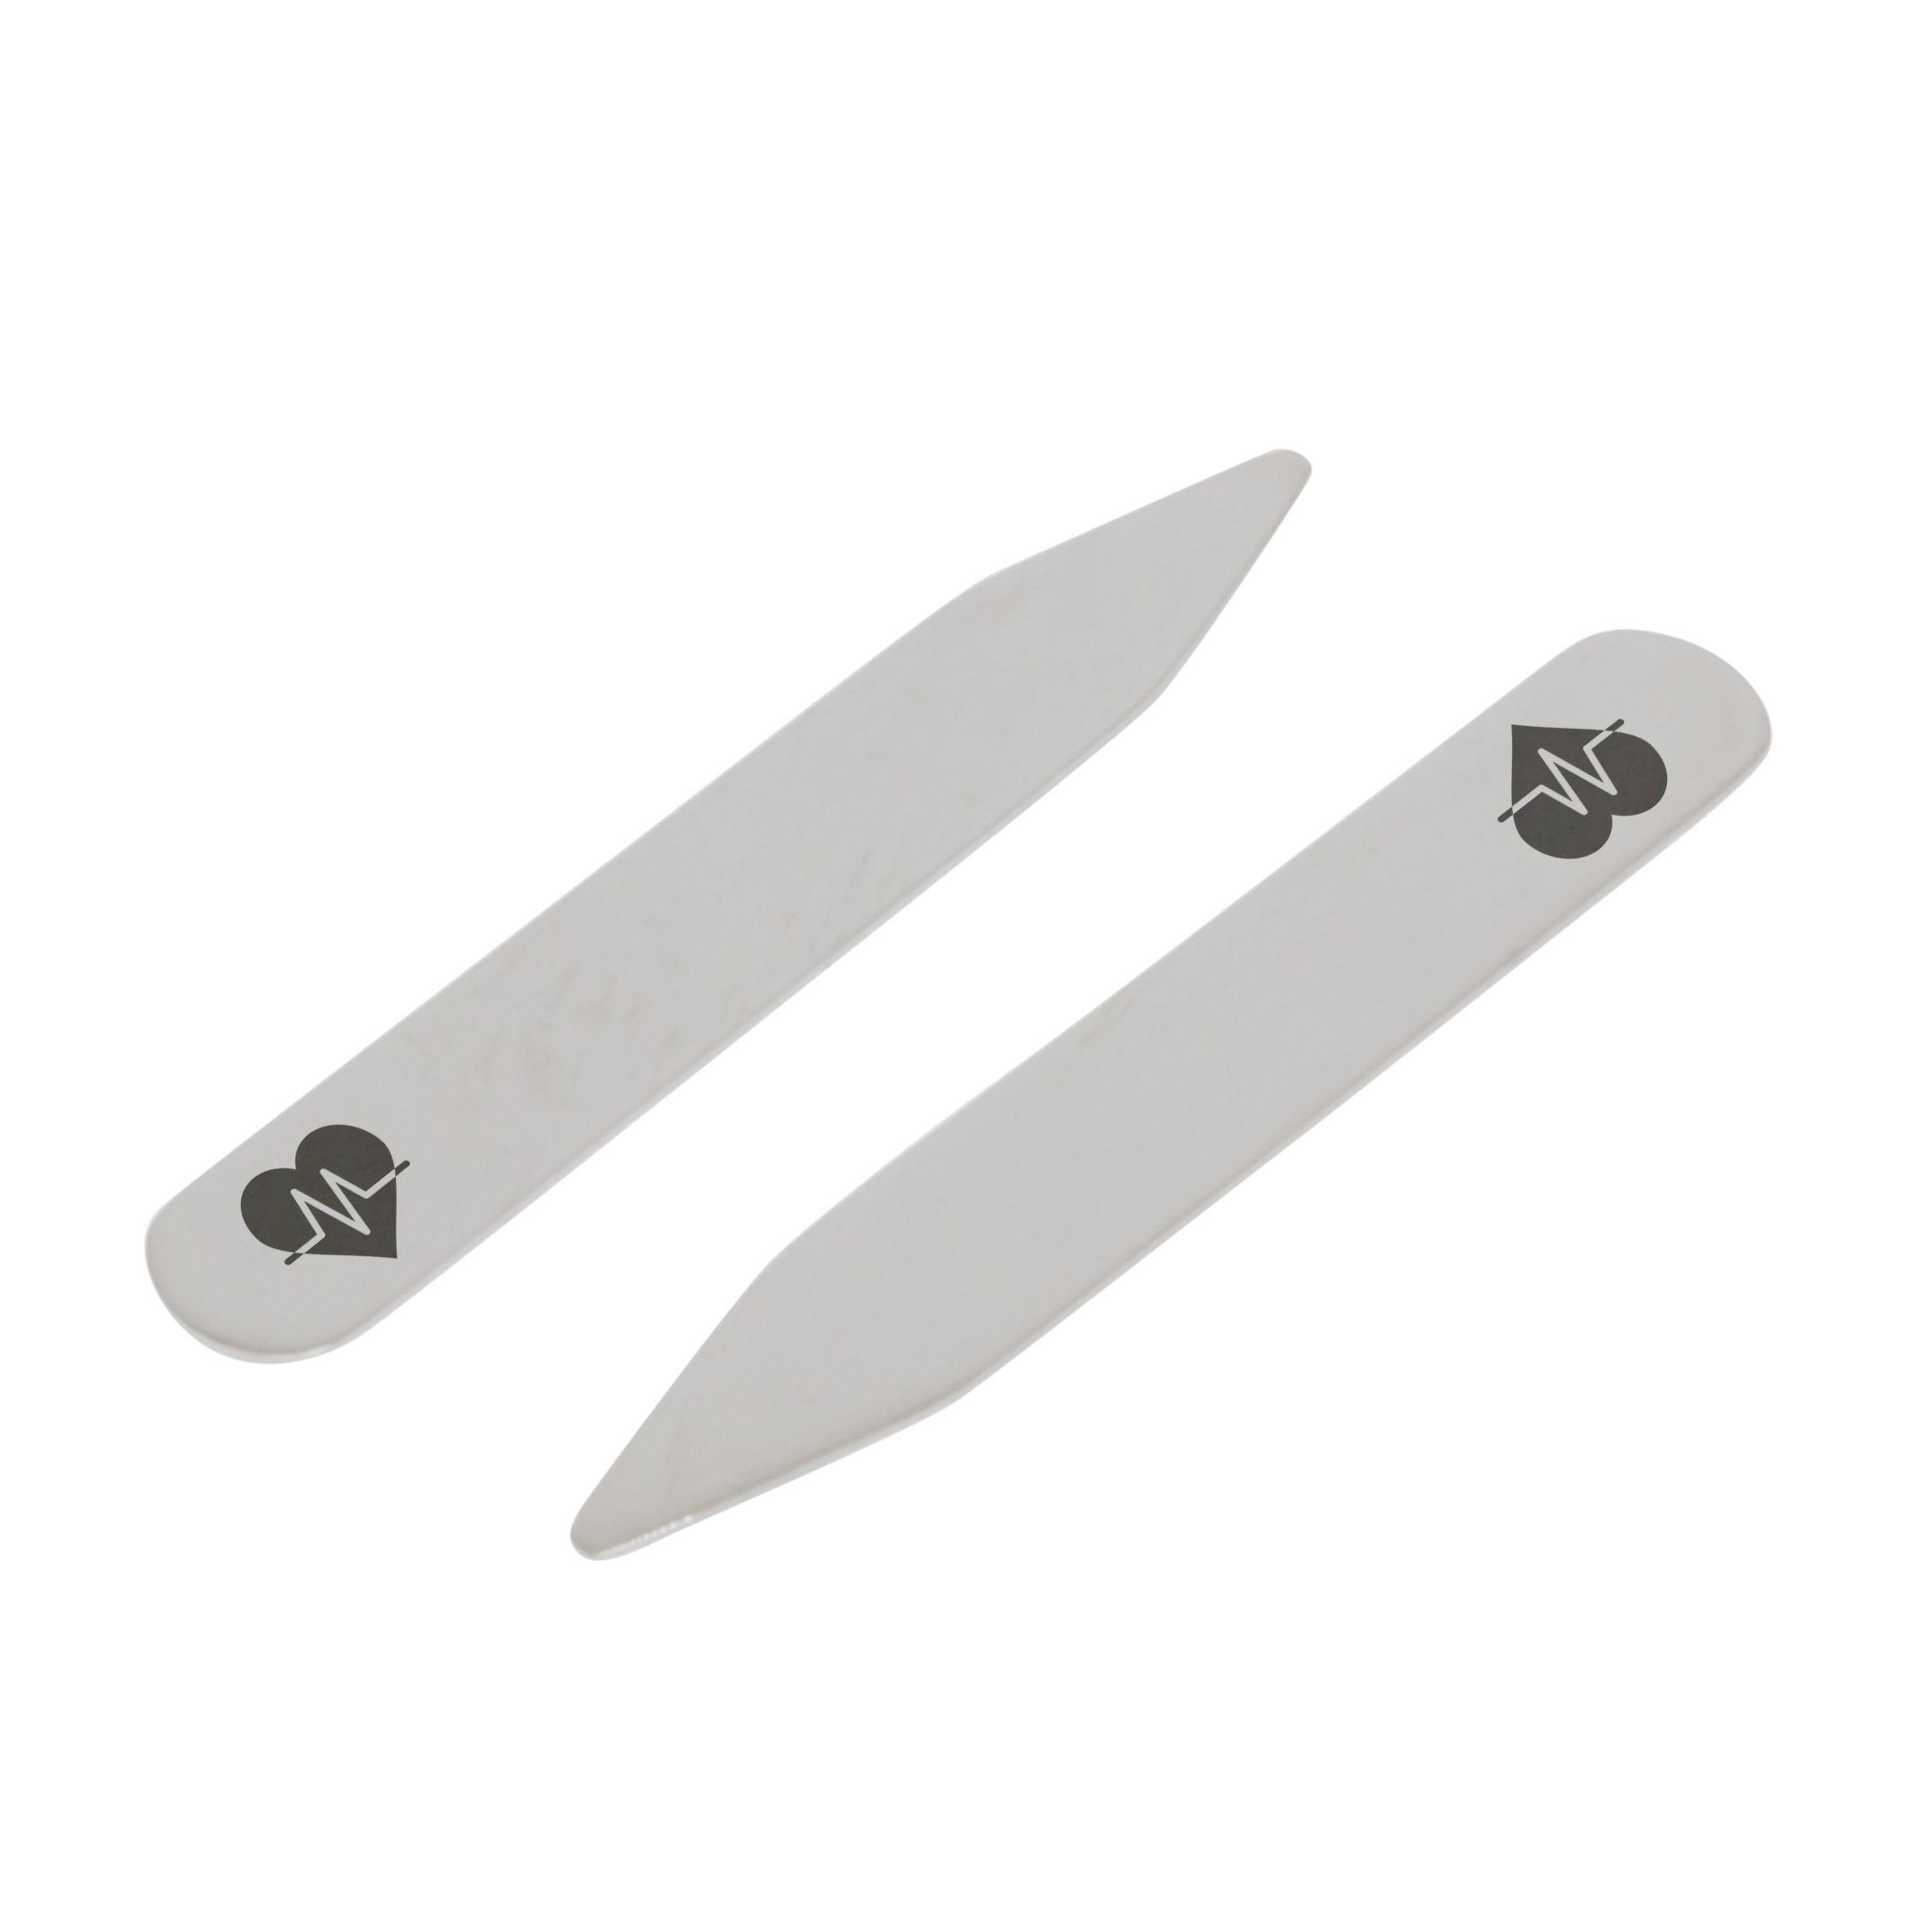 MODERN GOODS SHOP Stainless Steel Collar Stays With Laser Engraved Heartbeat Love Design - 2.5 Inch Metal Collar Stiffeners - Made In USA